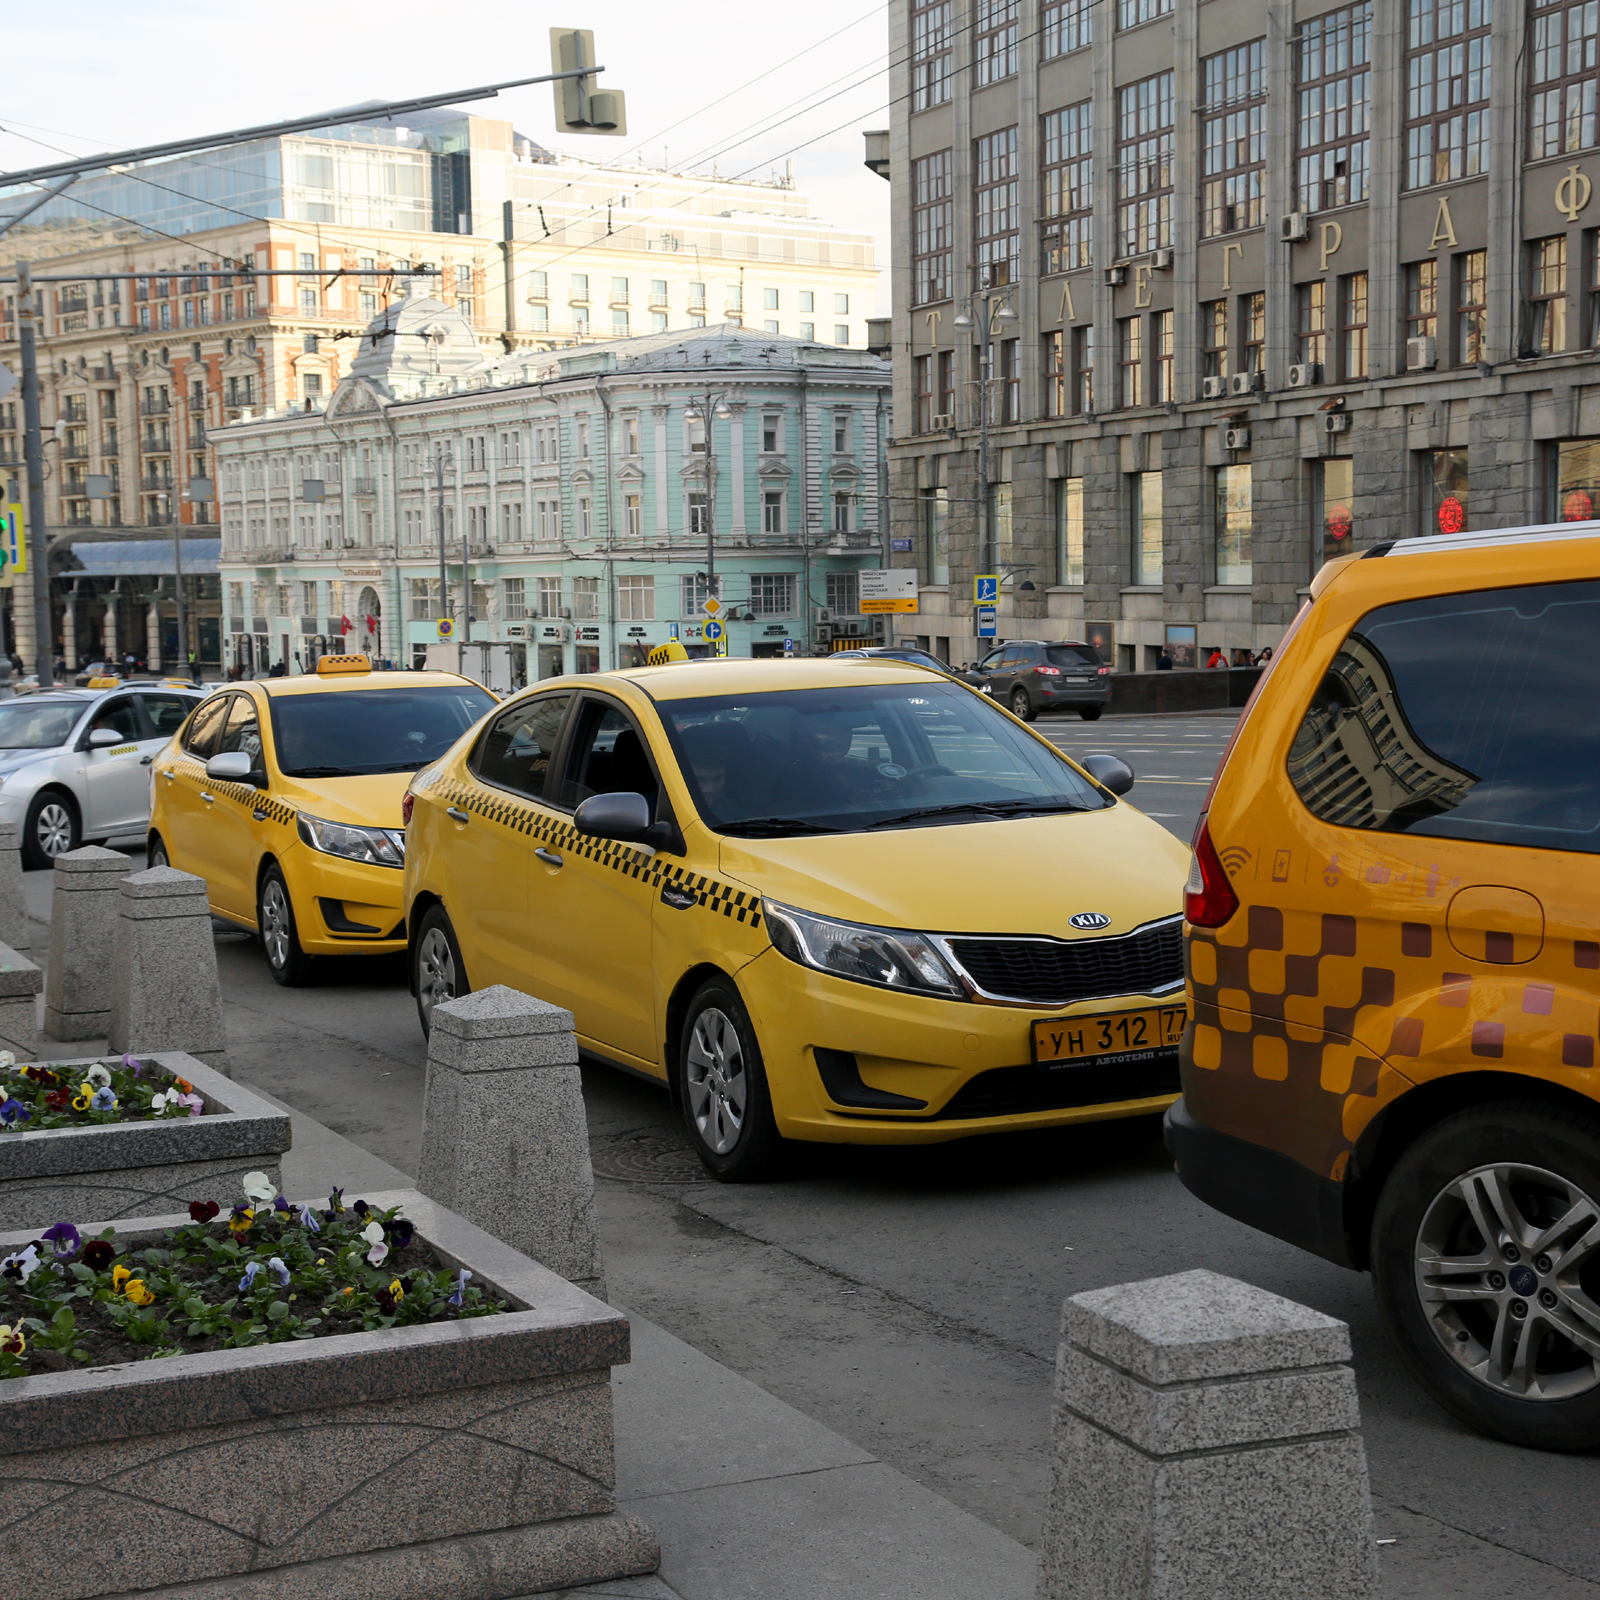 Taxis Take BCH, Stores Sell BTC in the Russian City of Rostov